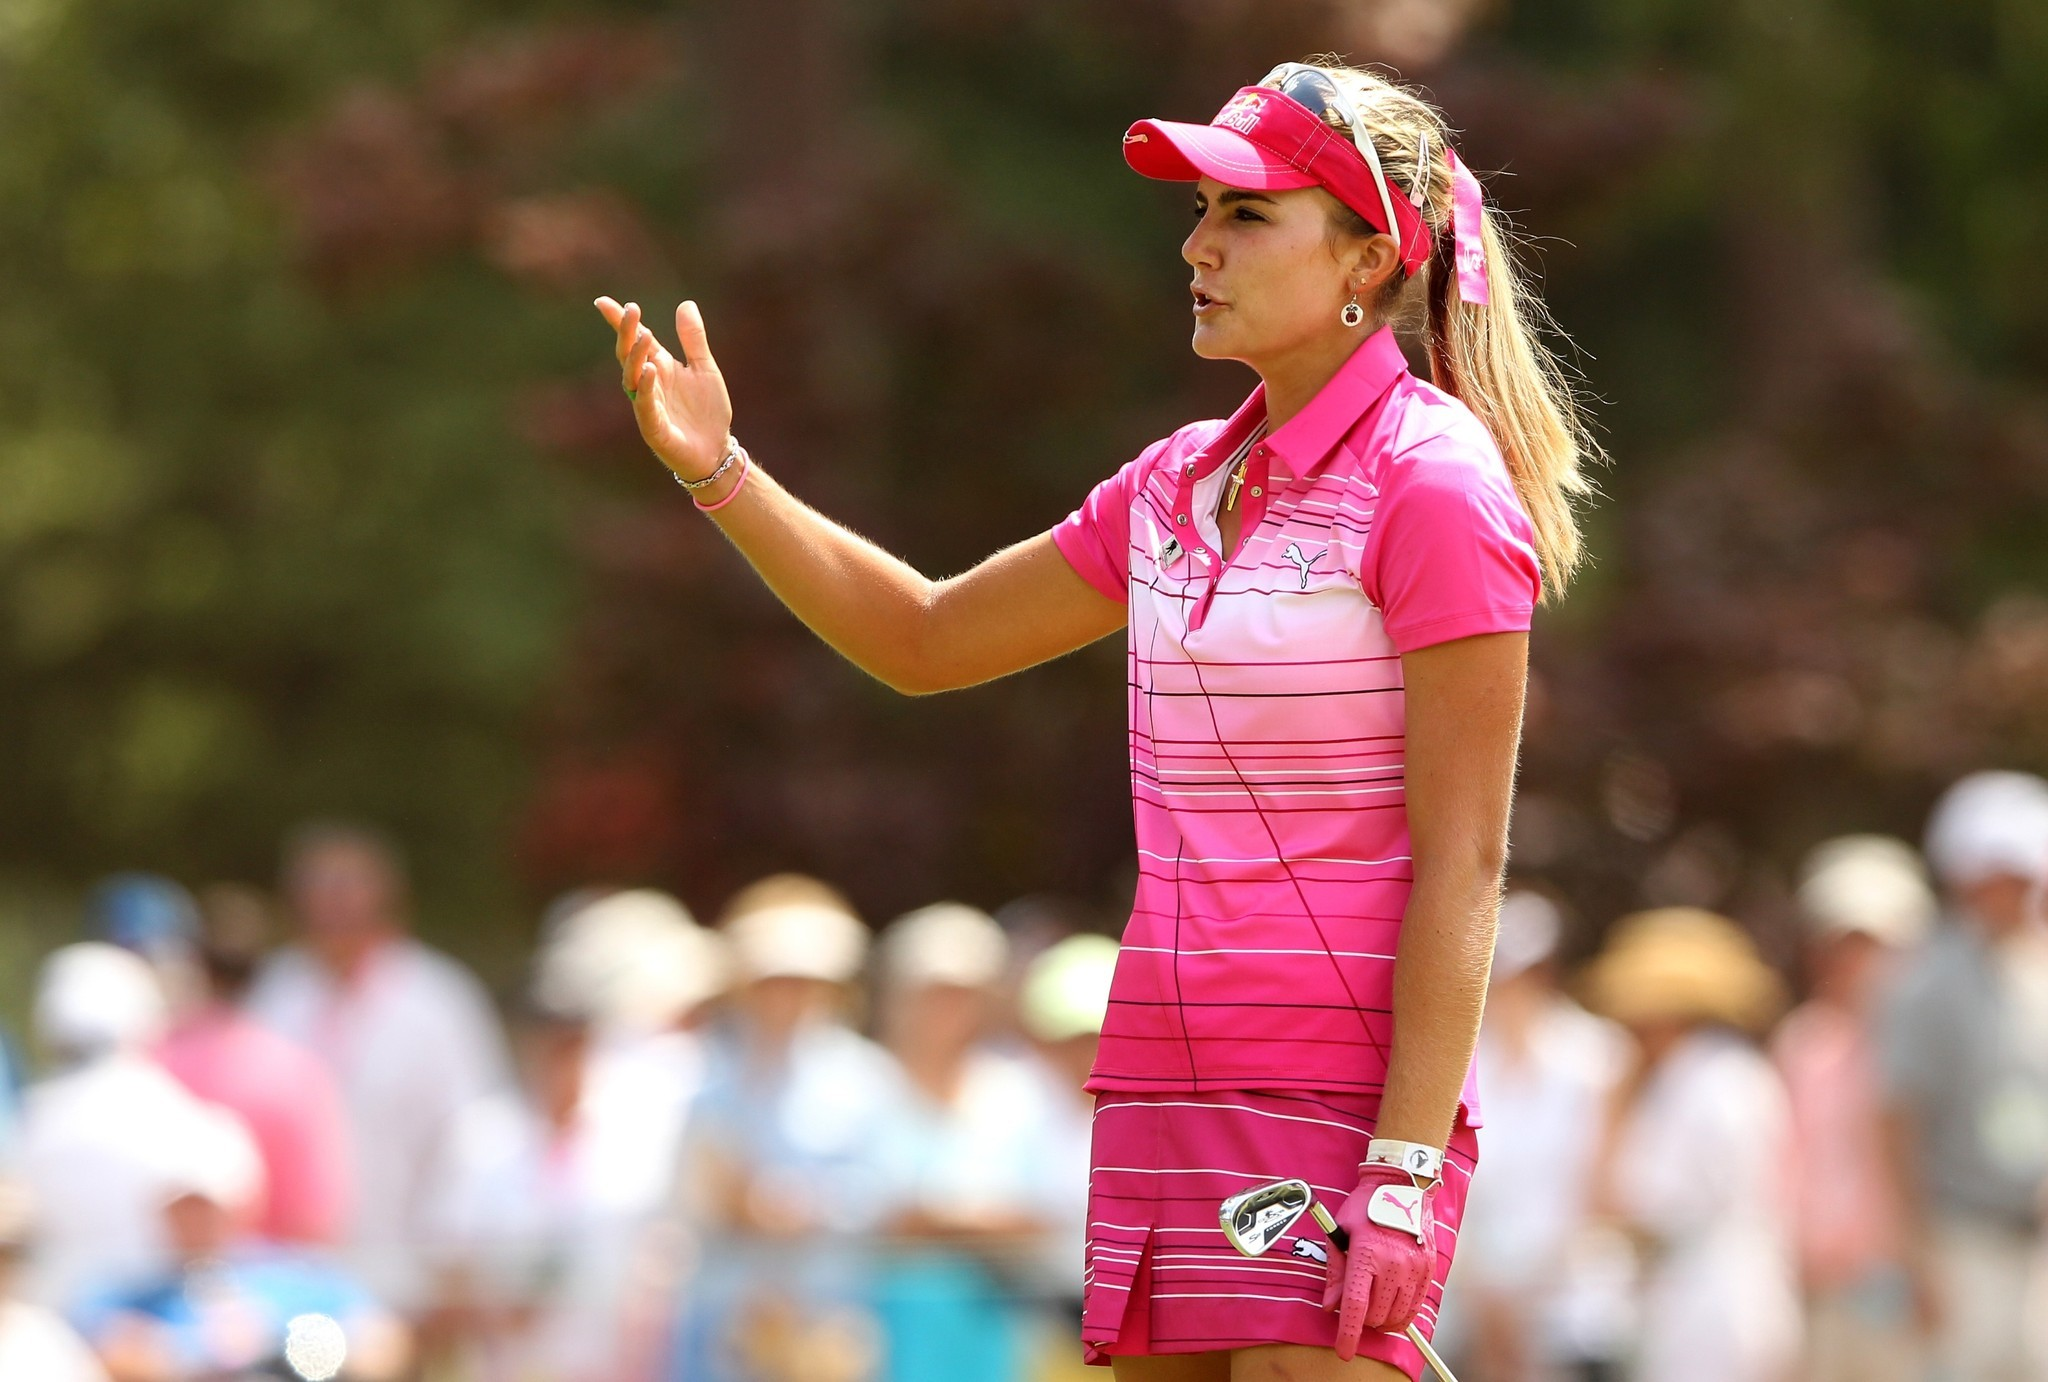 Meet the U.S. team for the International Crown at Caves Valley - LEXI THOMPSON